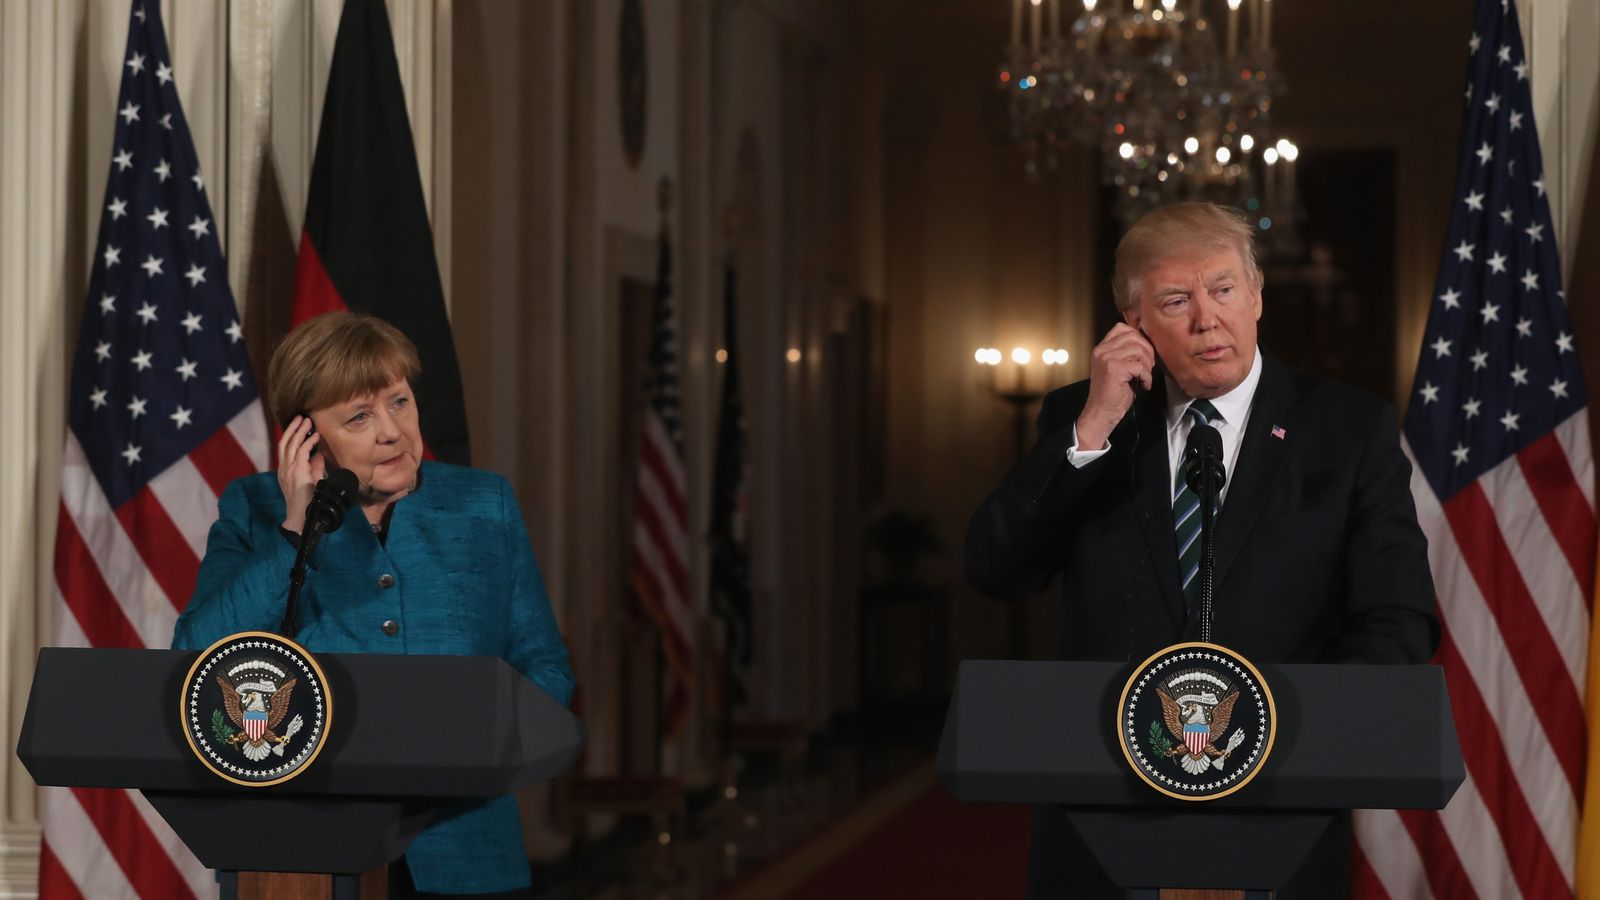 Angela Merkel and Donald Trump and the White House